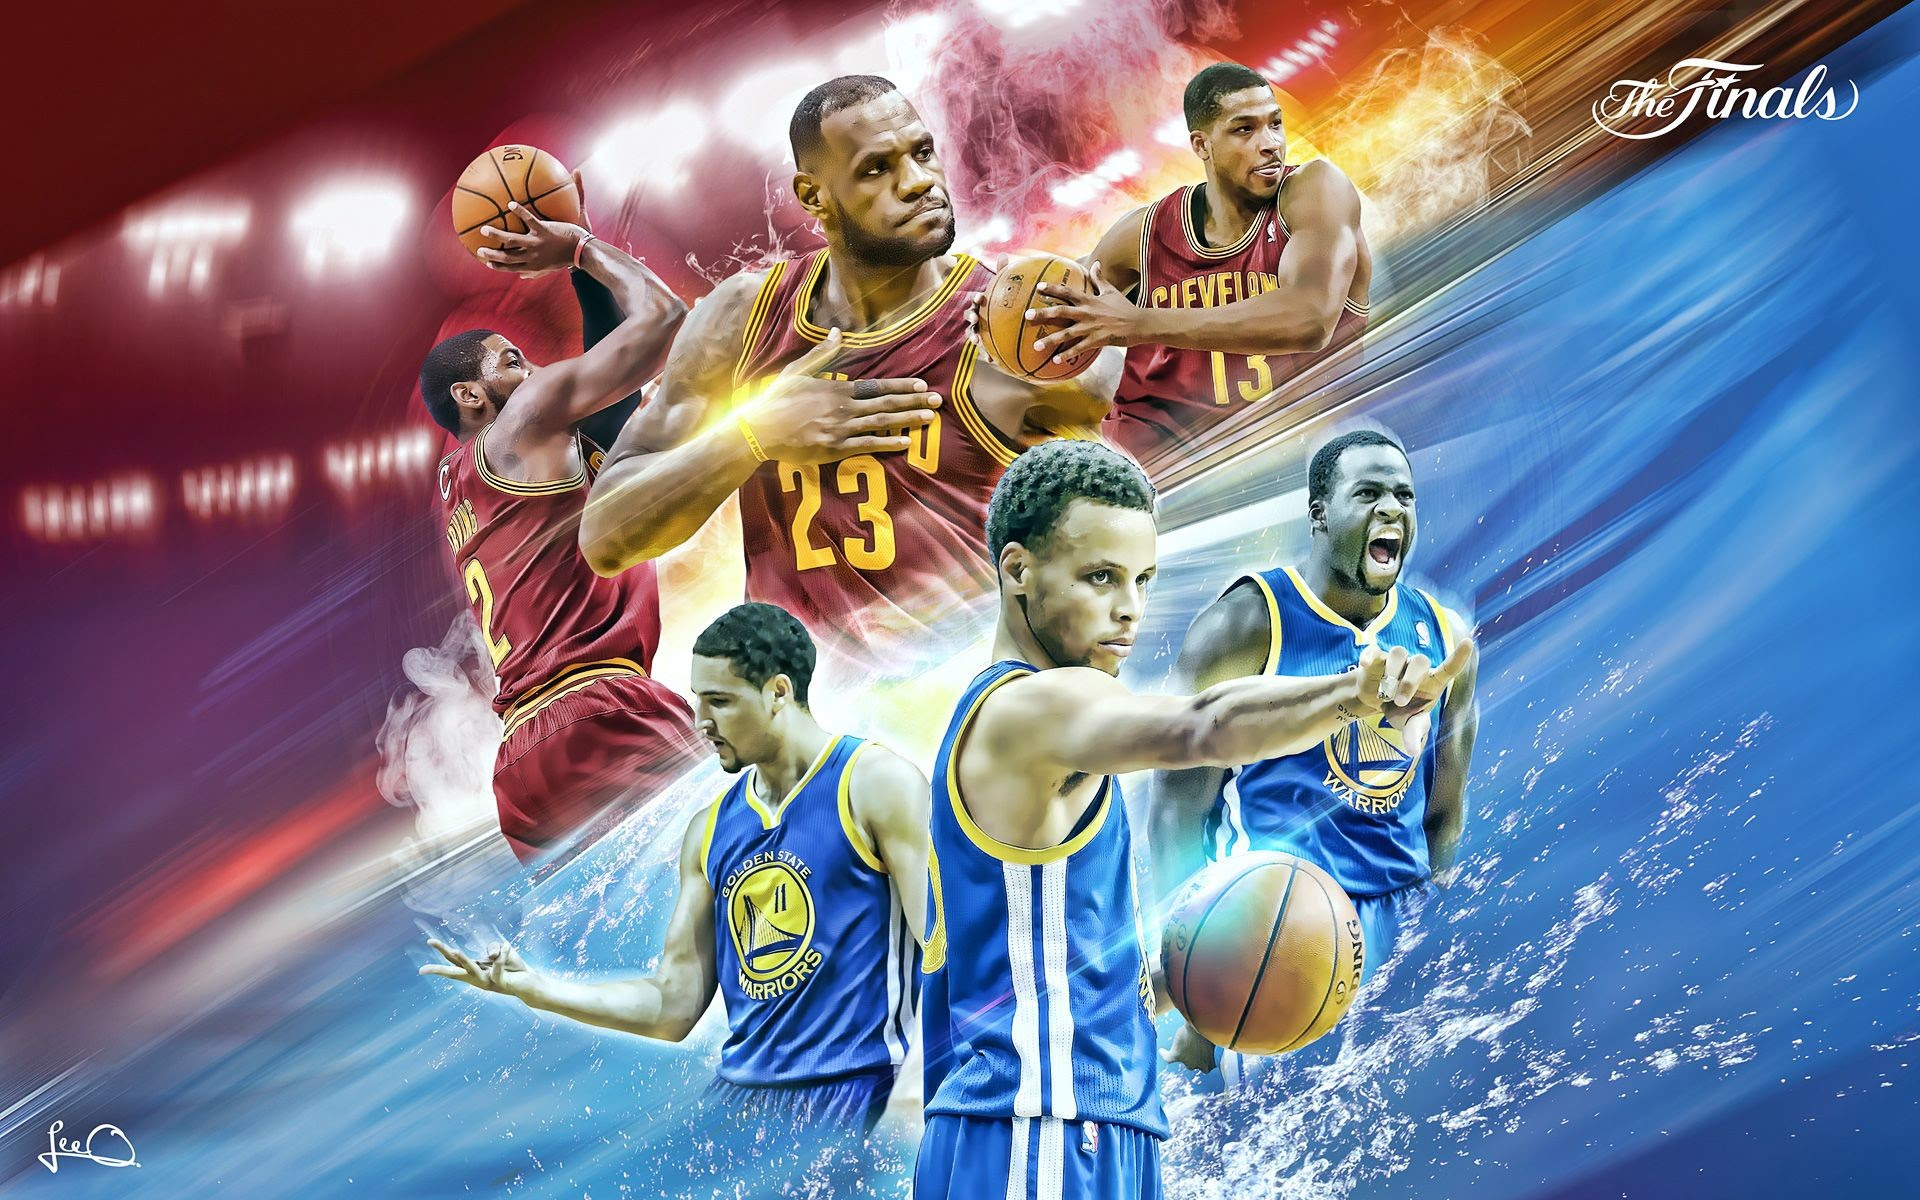 Cool NBA Wallpapers for iPhone 65+ images